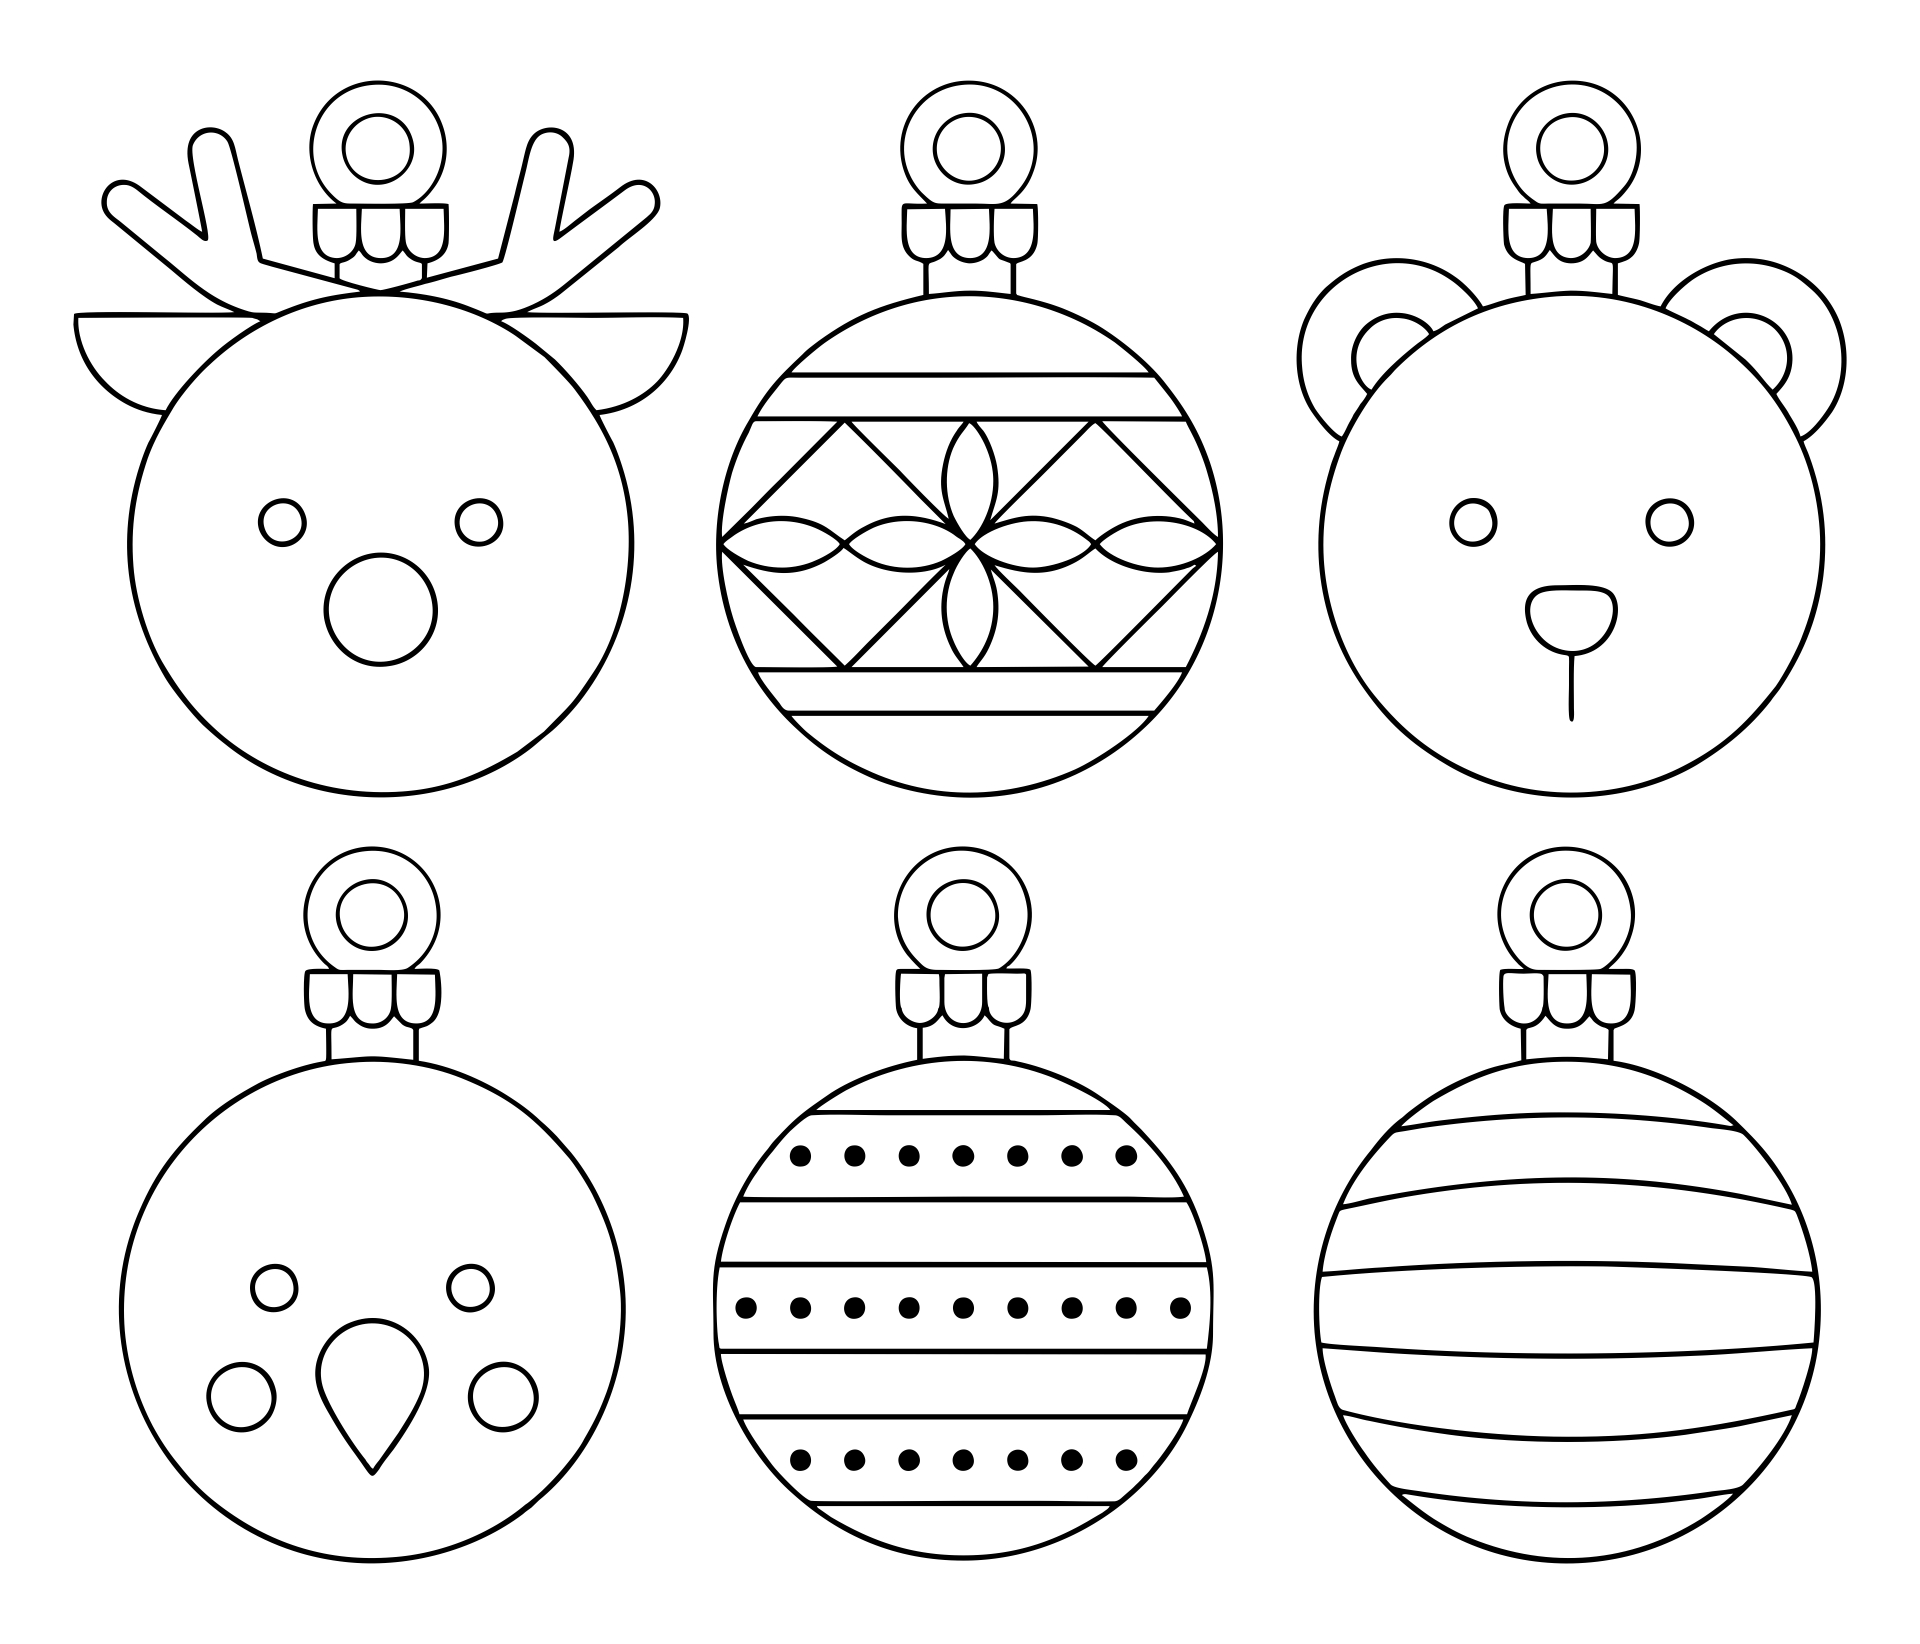 Best images of free printable christmas ornament